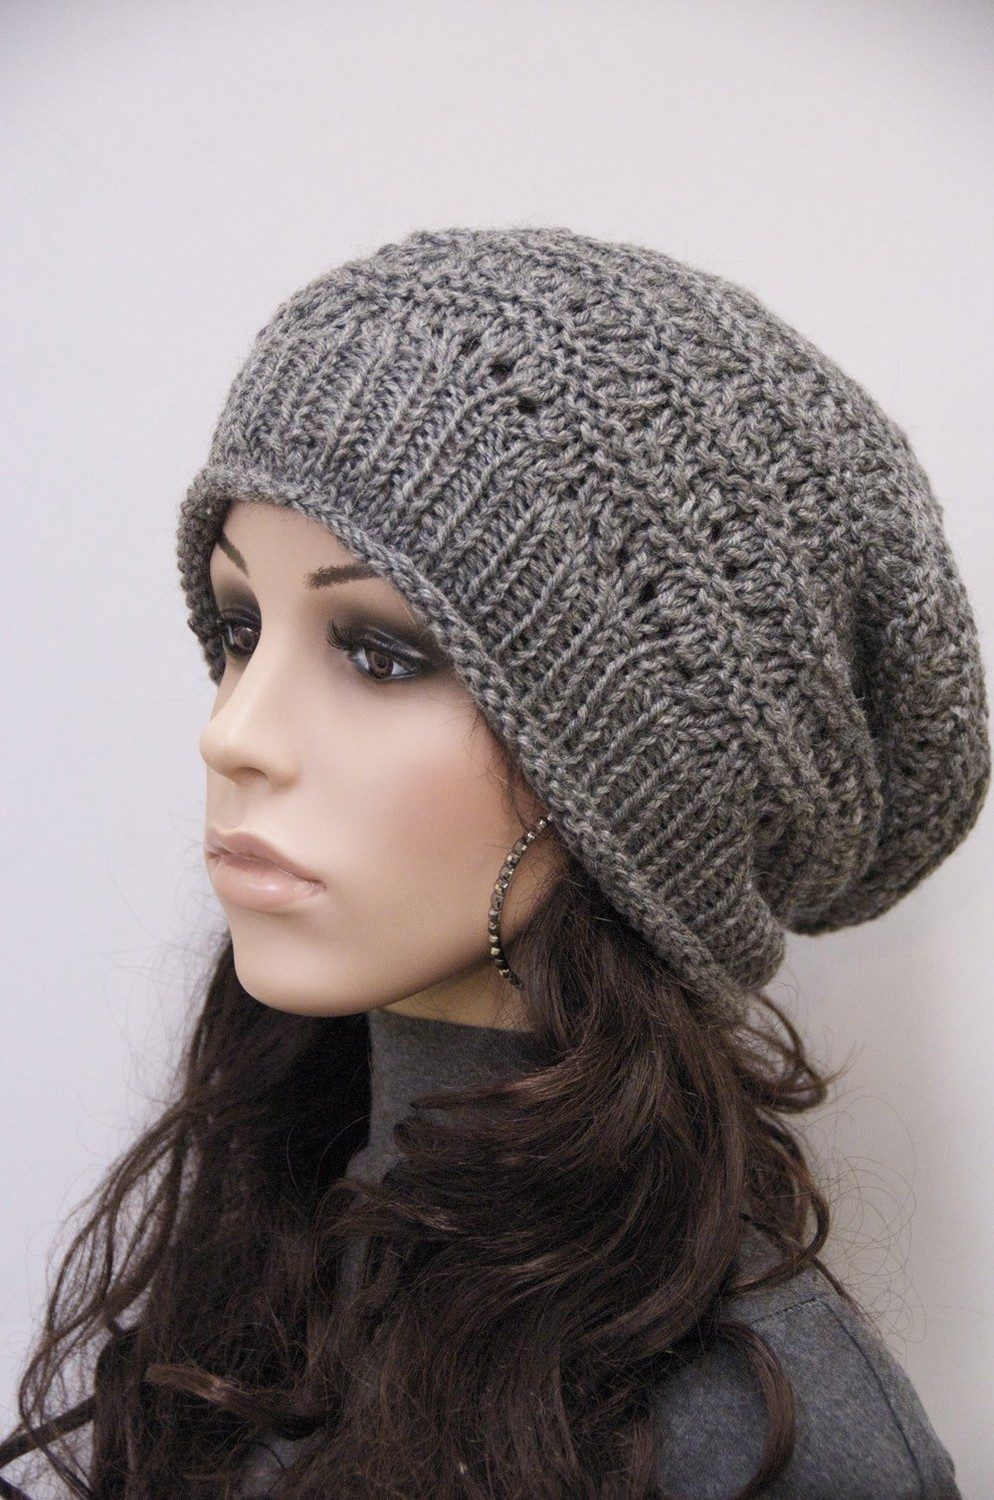 The Process Of Knitting: How To Knit A Hat - thefashiontamer.com